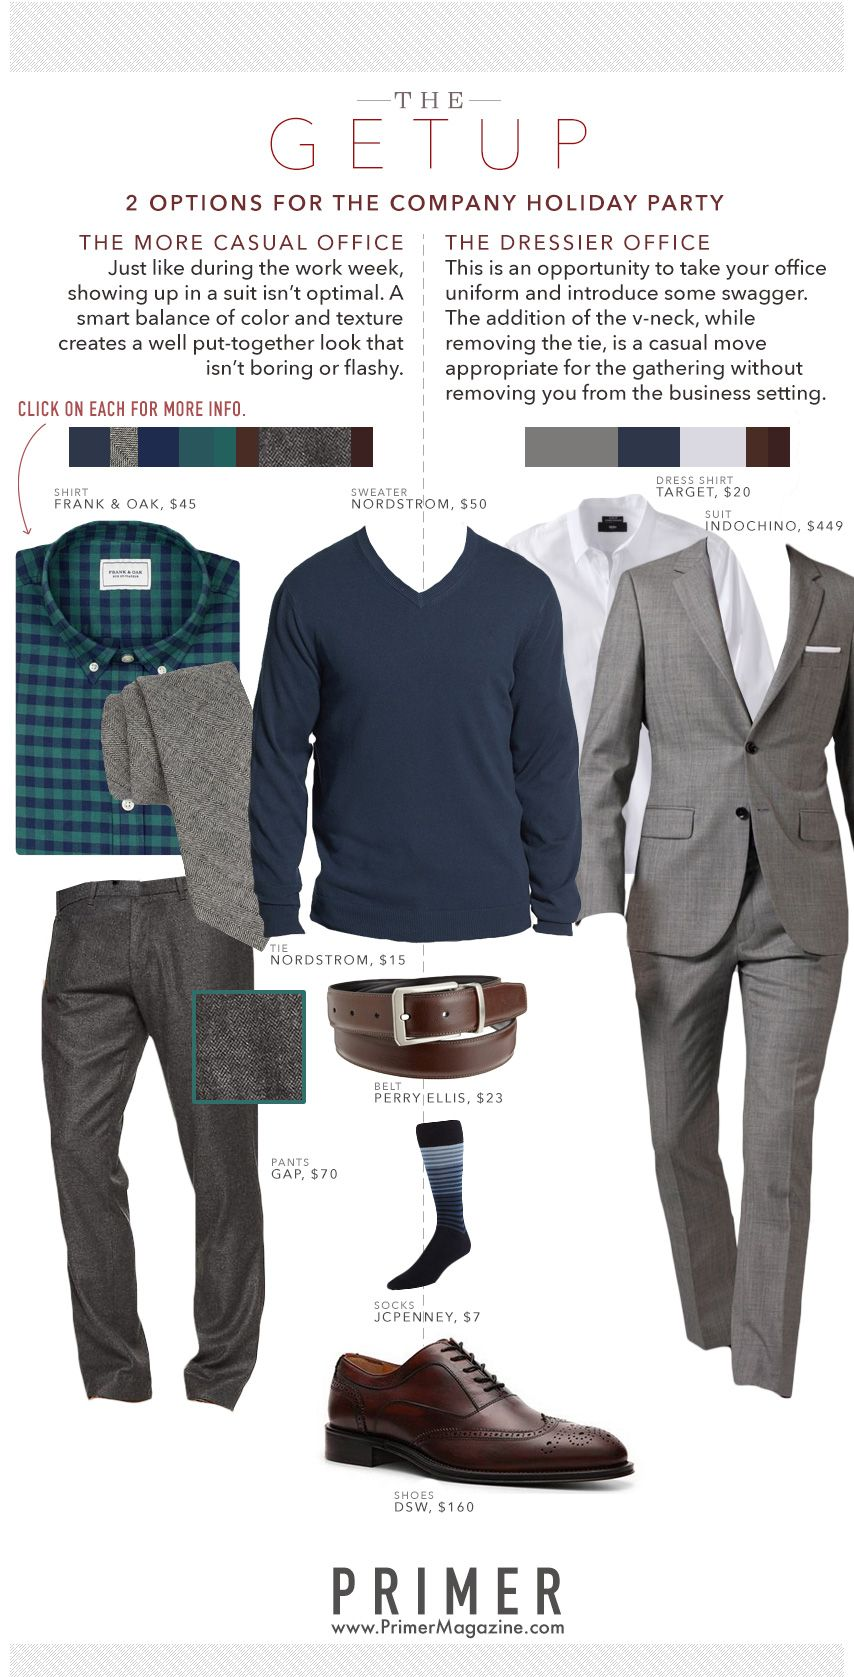 Formal Christmas Party Ideas Part - 46: What To Wear To Company Holiday Party